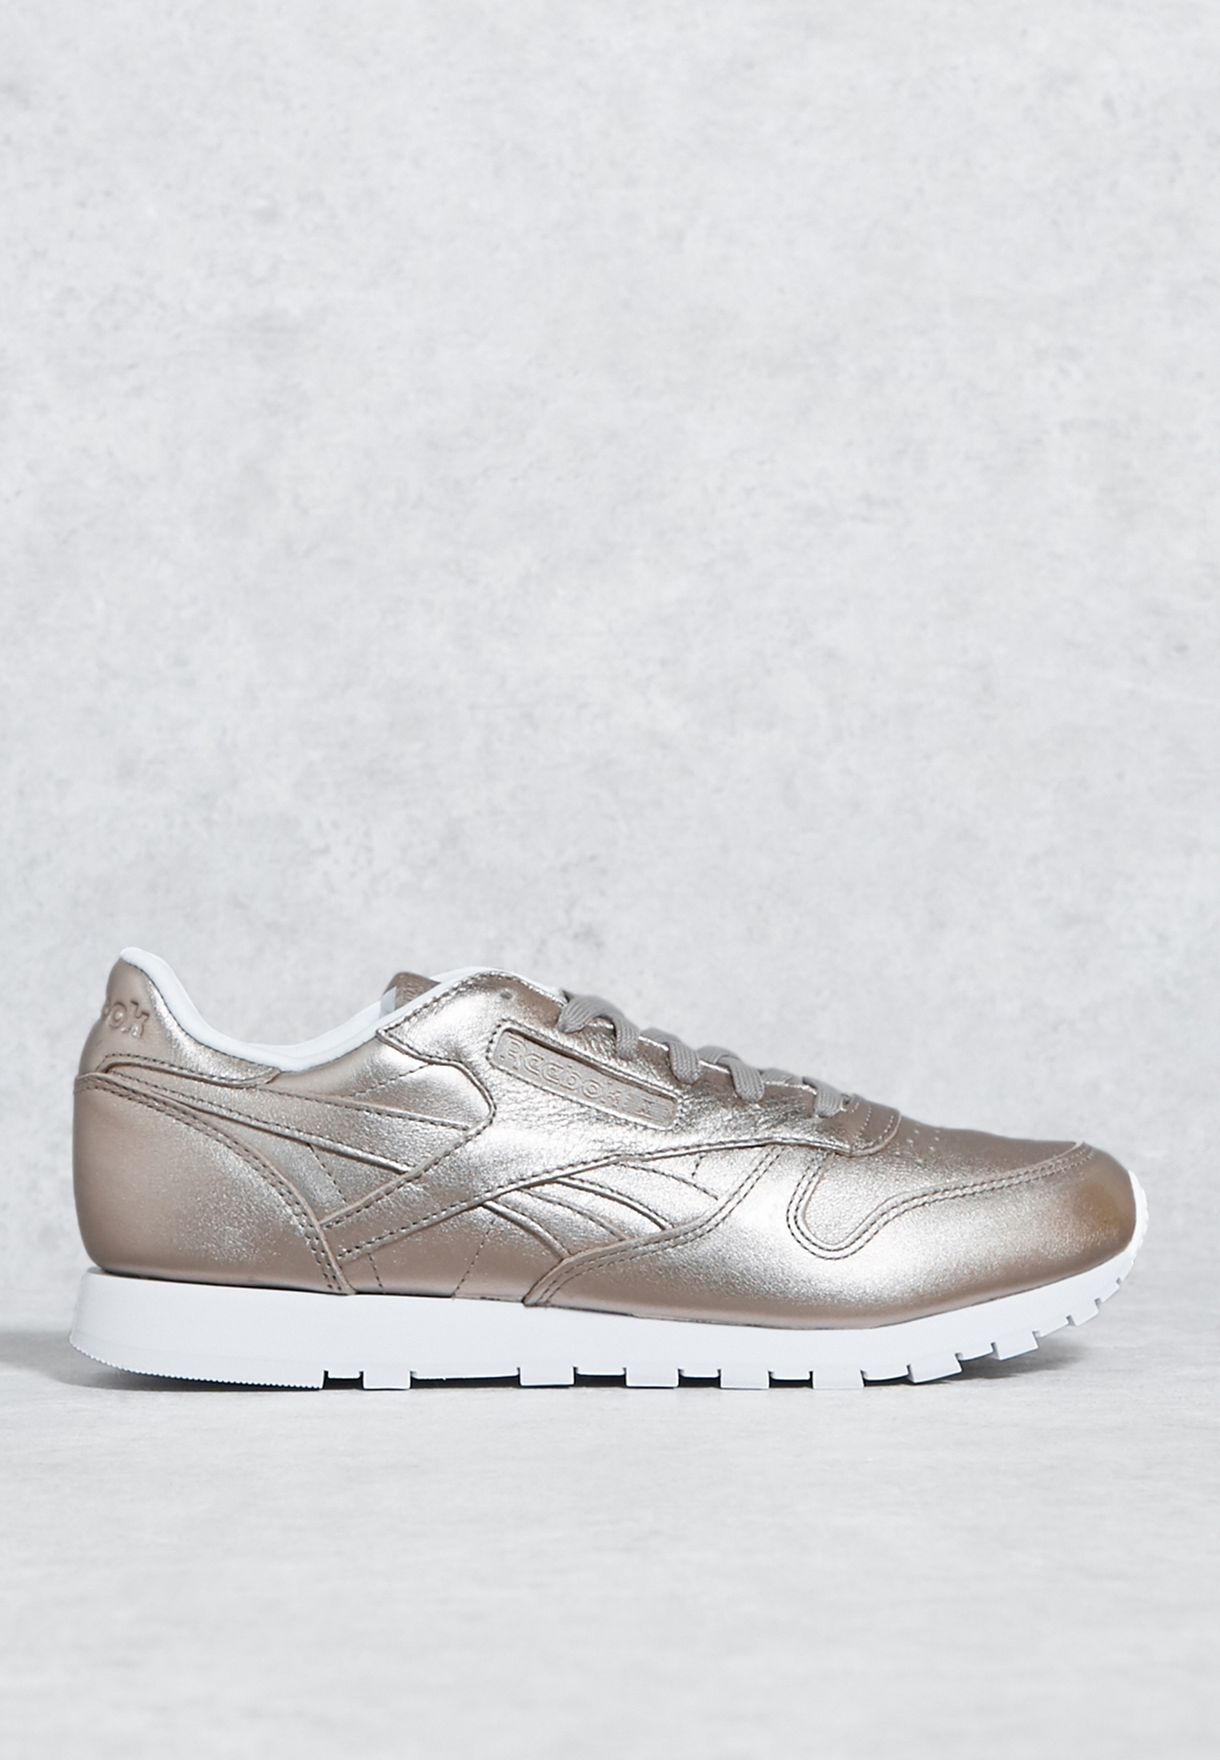 1e802fa3edd Shop Reebok gold Classic Leather Metallic Trainers BS7898 for Women in Oman  - RE019SH76EPN